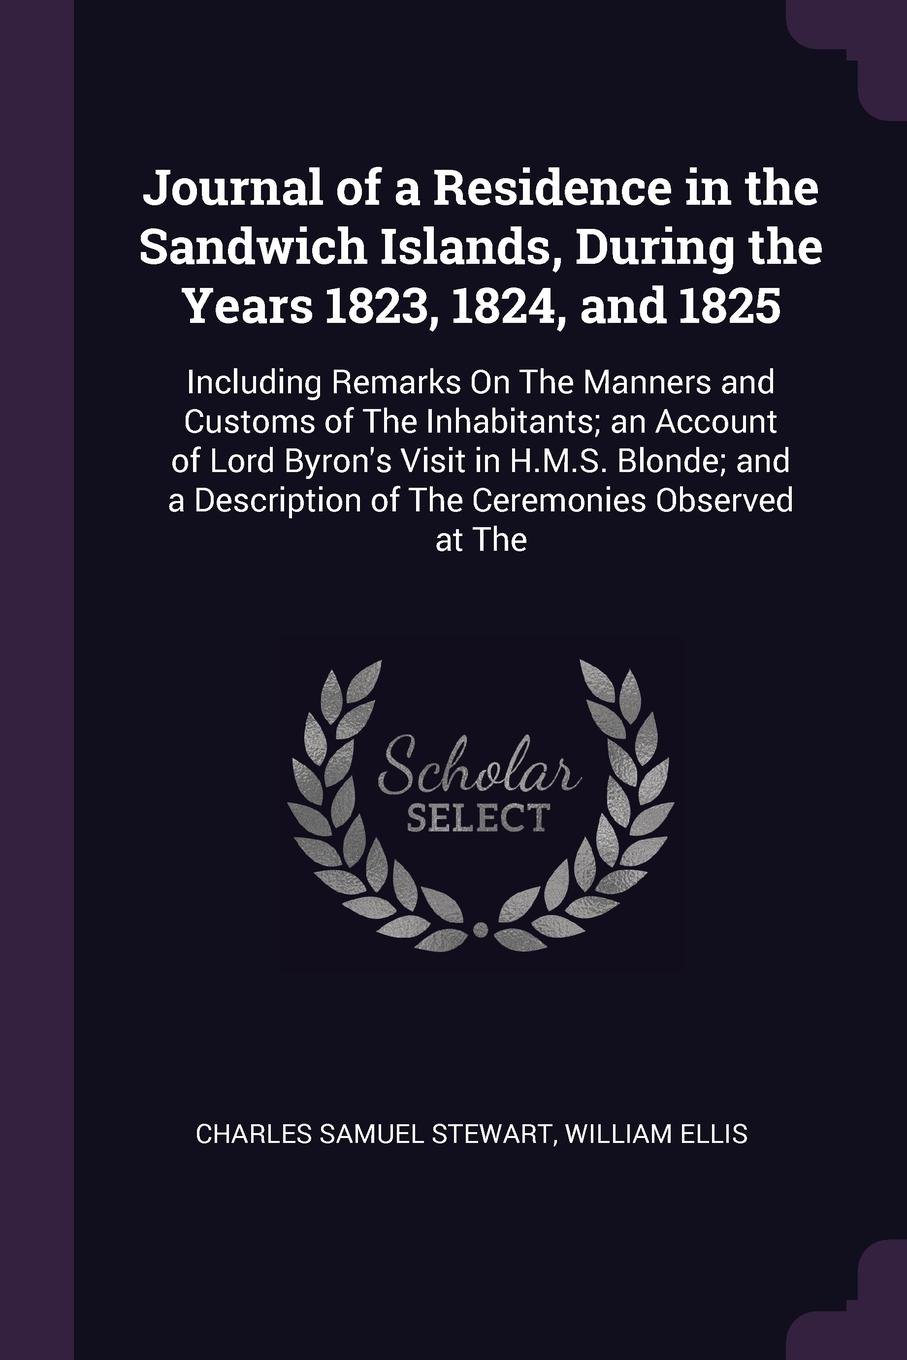 Journal of a Residence in the Sandwich Islands, During the Years 1823, 1824, and 1825. Including Remarks On The Manners and Customs of The Inhabitants; an Account of Lord Byron`s Visit in H.M.S. Blonde; and a Description of The Ceremonies Observed...